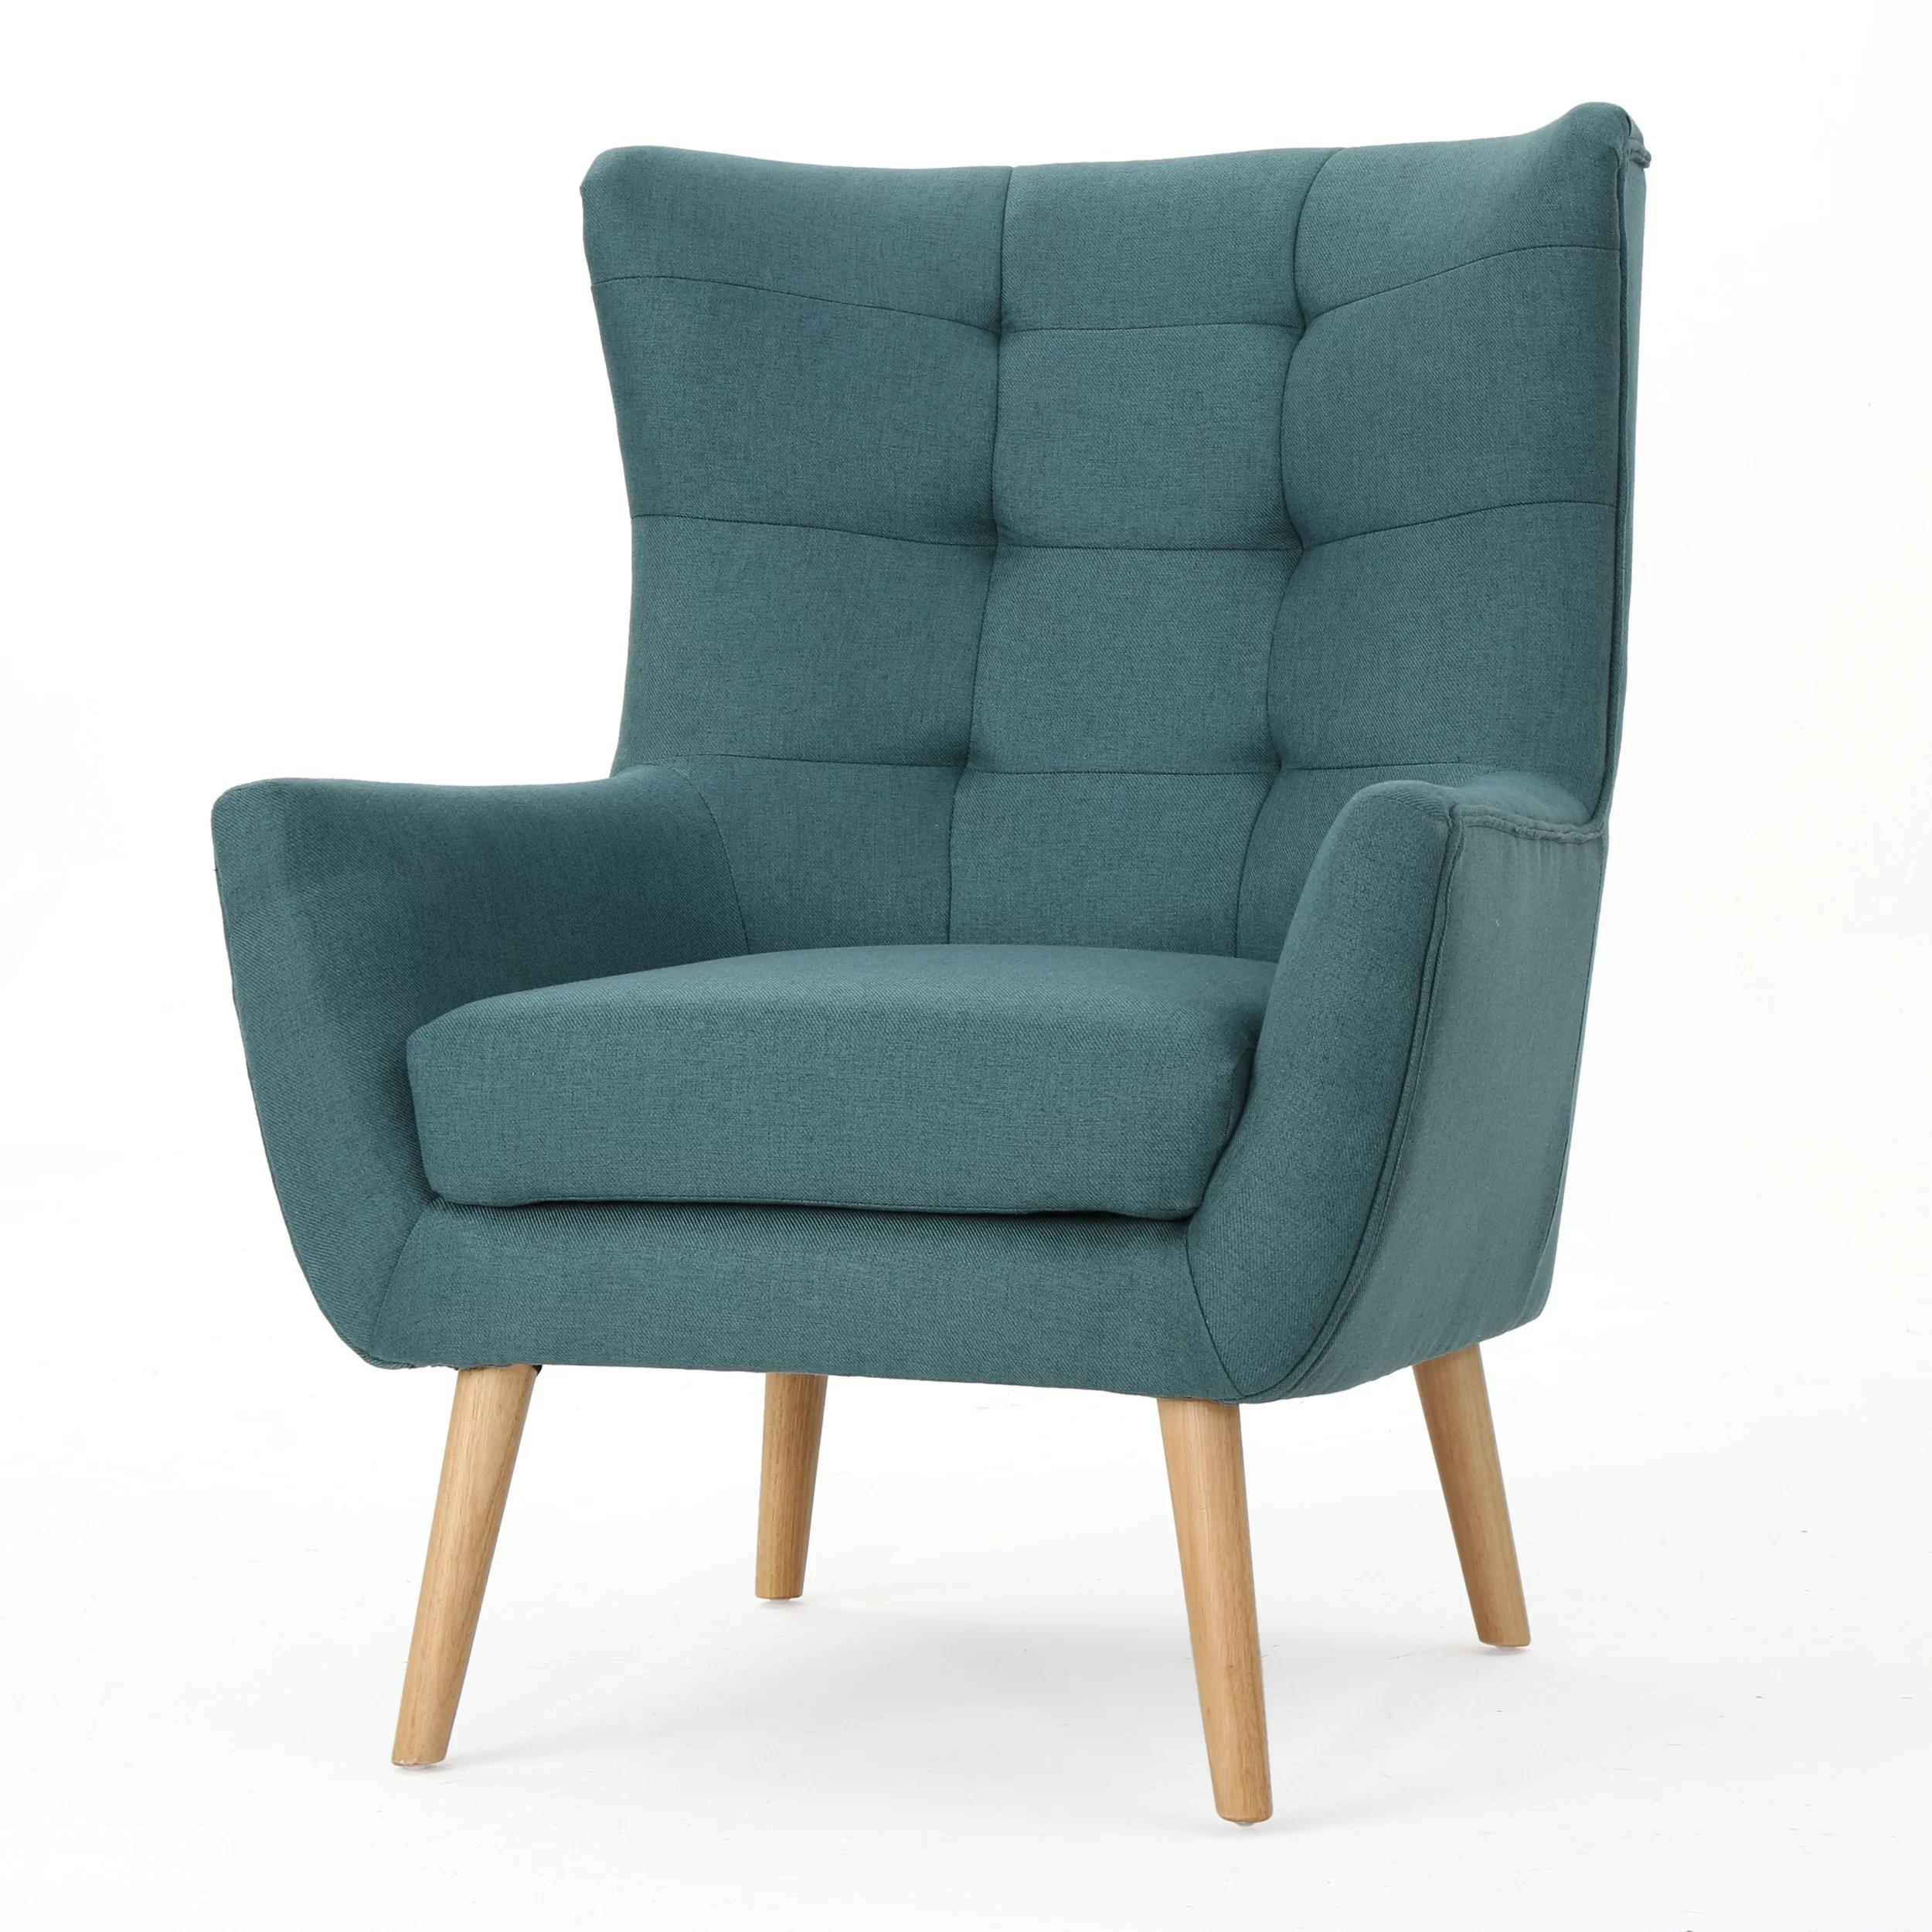 Teal Wingback Chair Paxton Wingback Chair